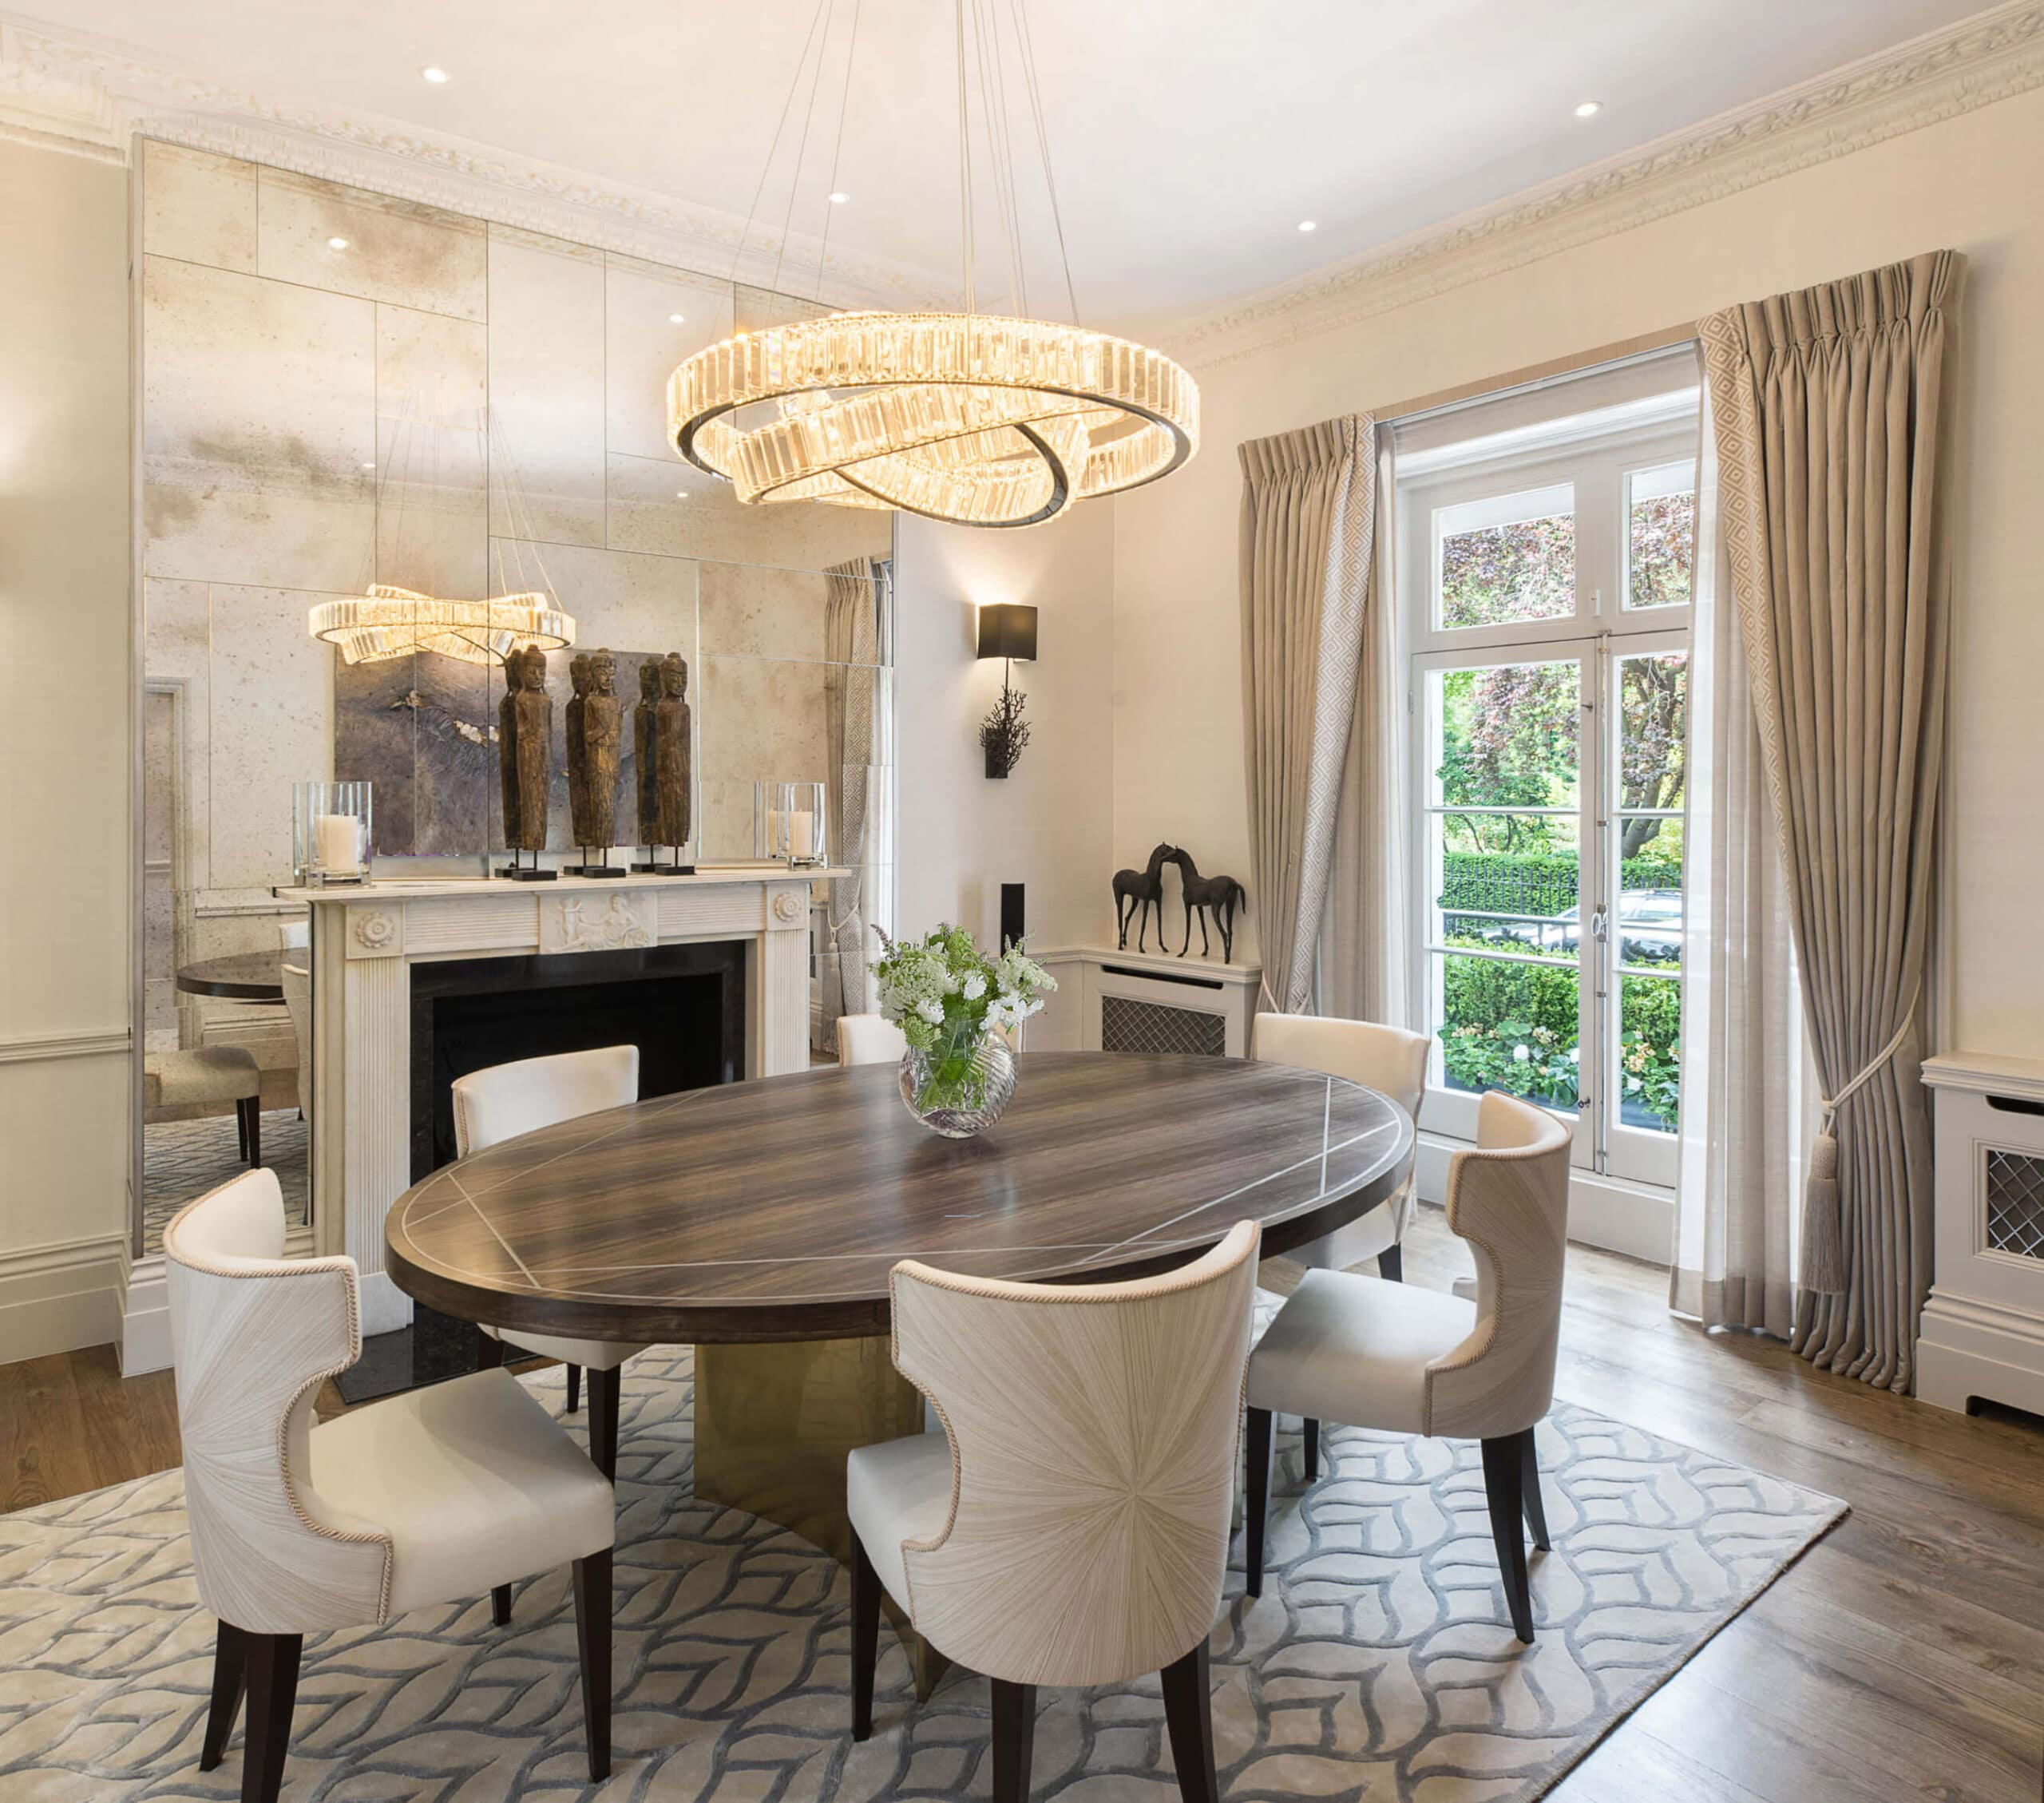 Luxury interior design project for townhouse